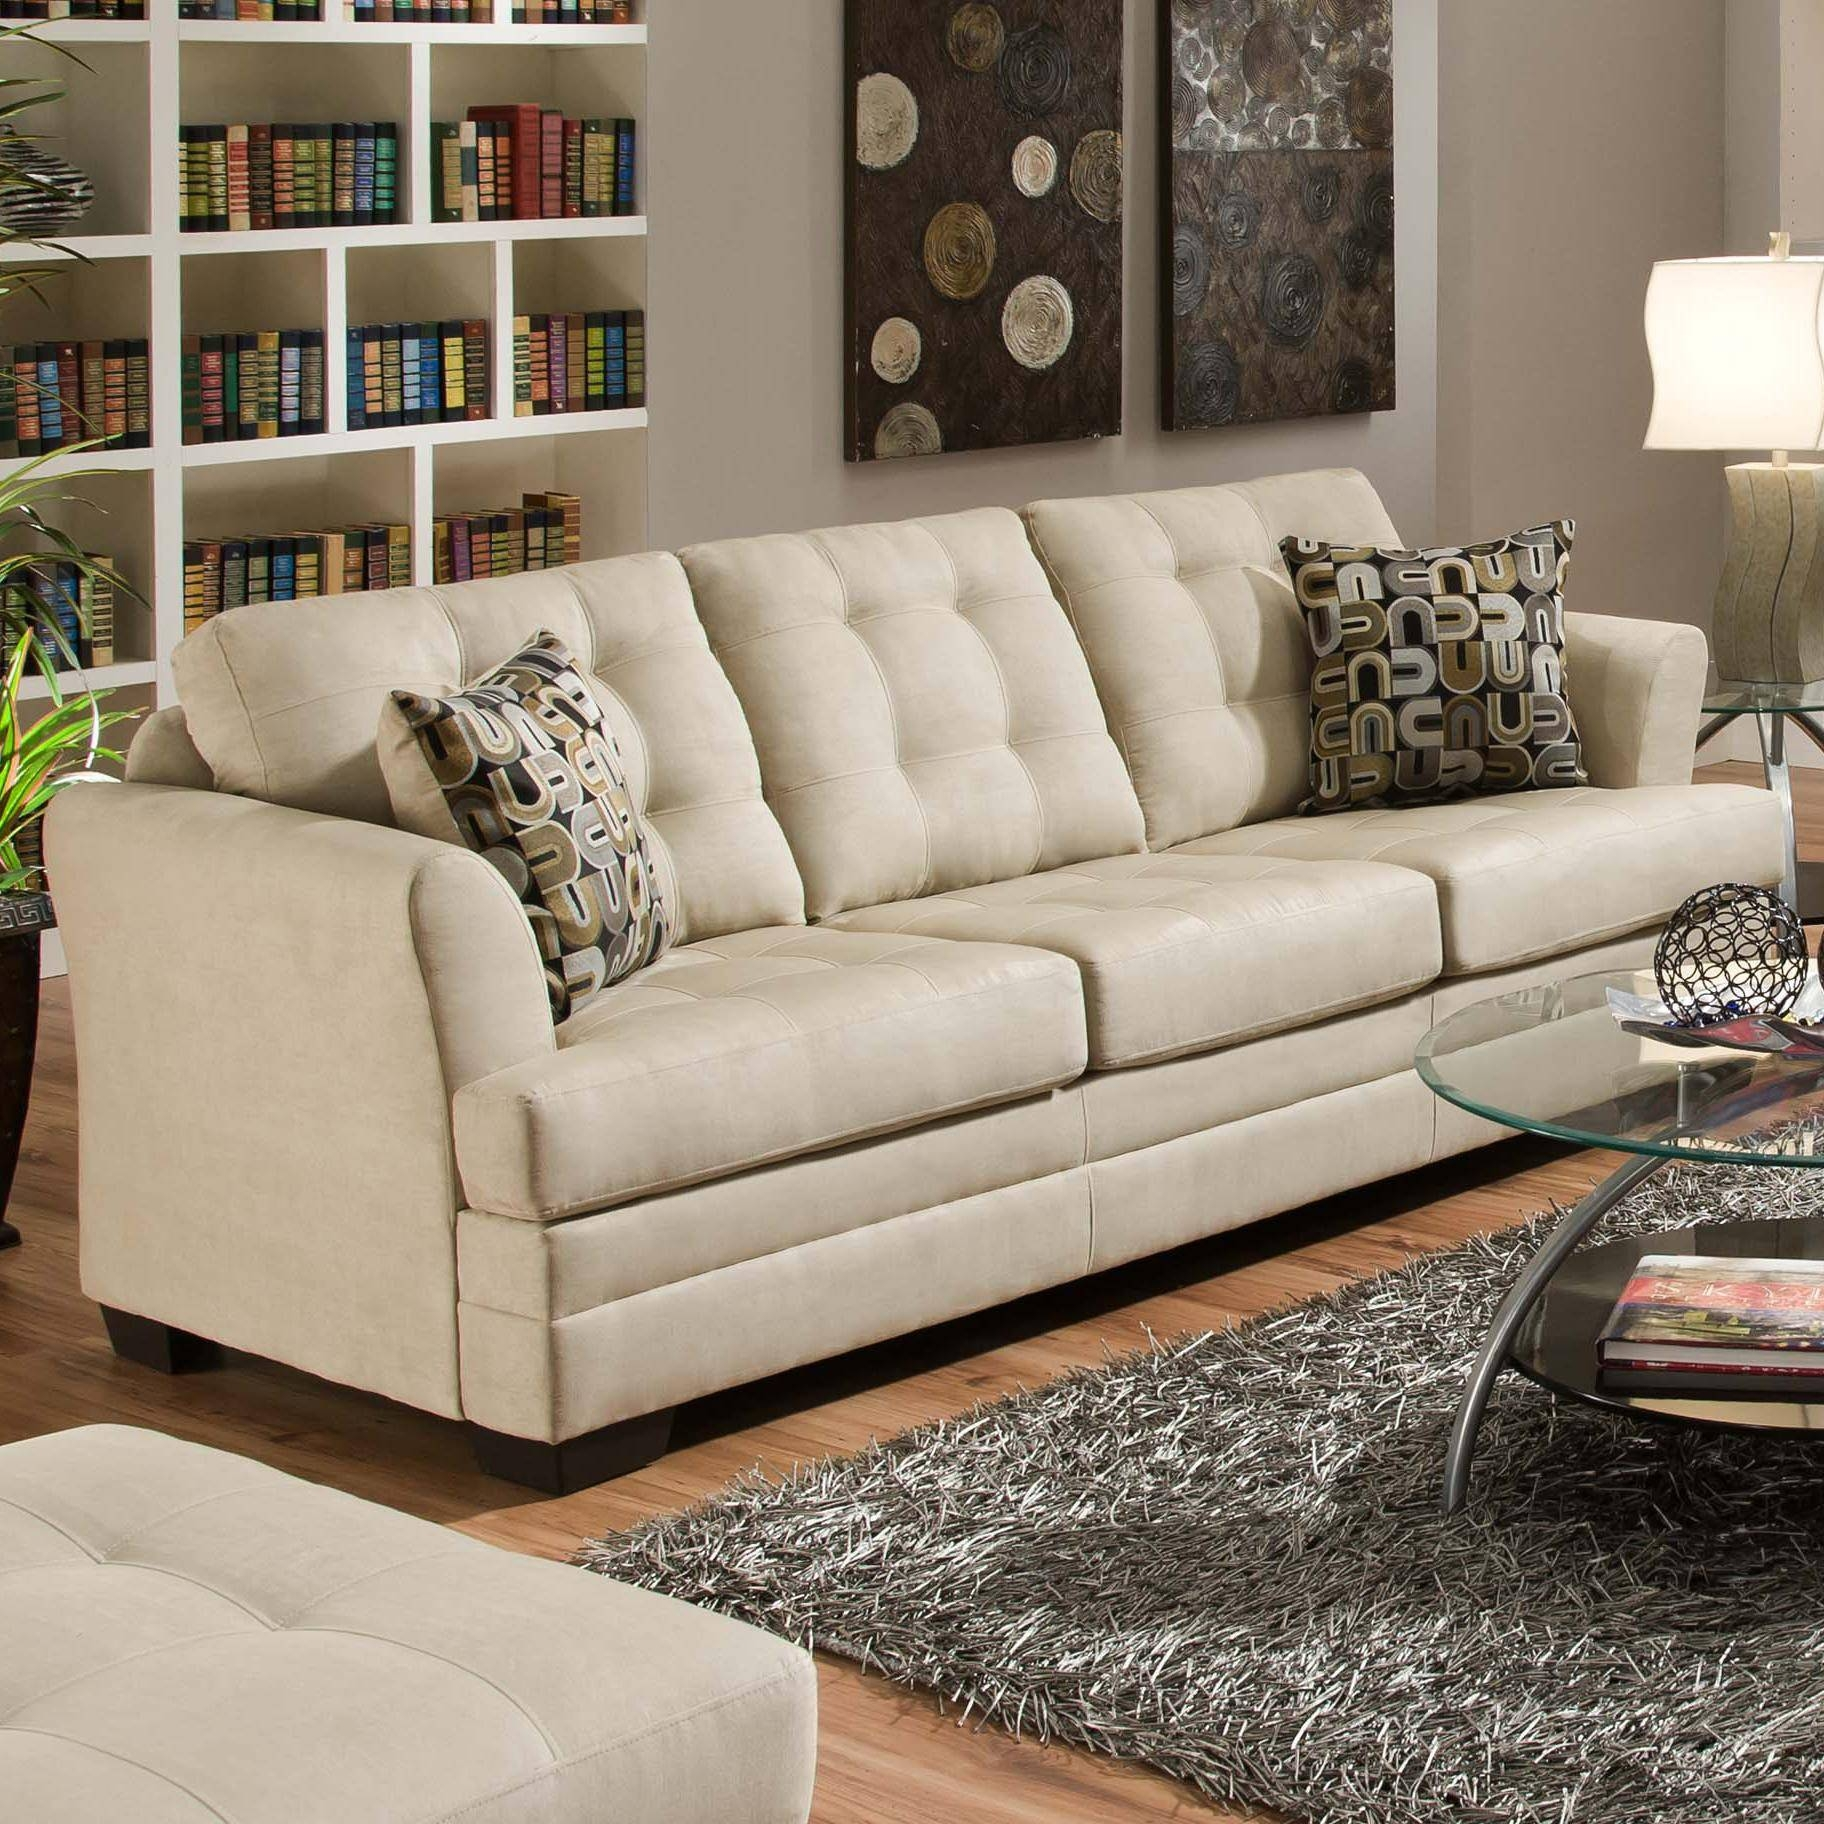 Furniture: Simmons Couch | Grey Sofa And Loveseat Set | Big Lots intended for Big Lots Simmons Furniture (Image 8 of 15)